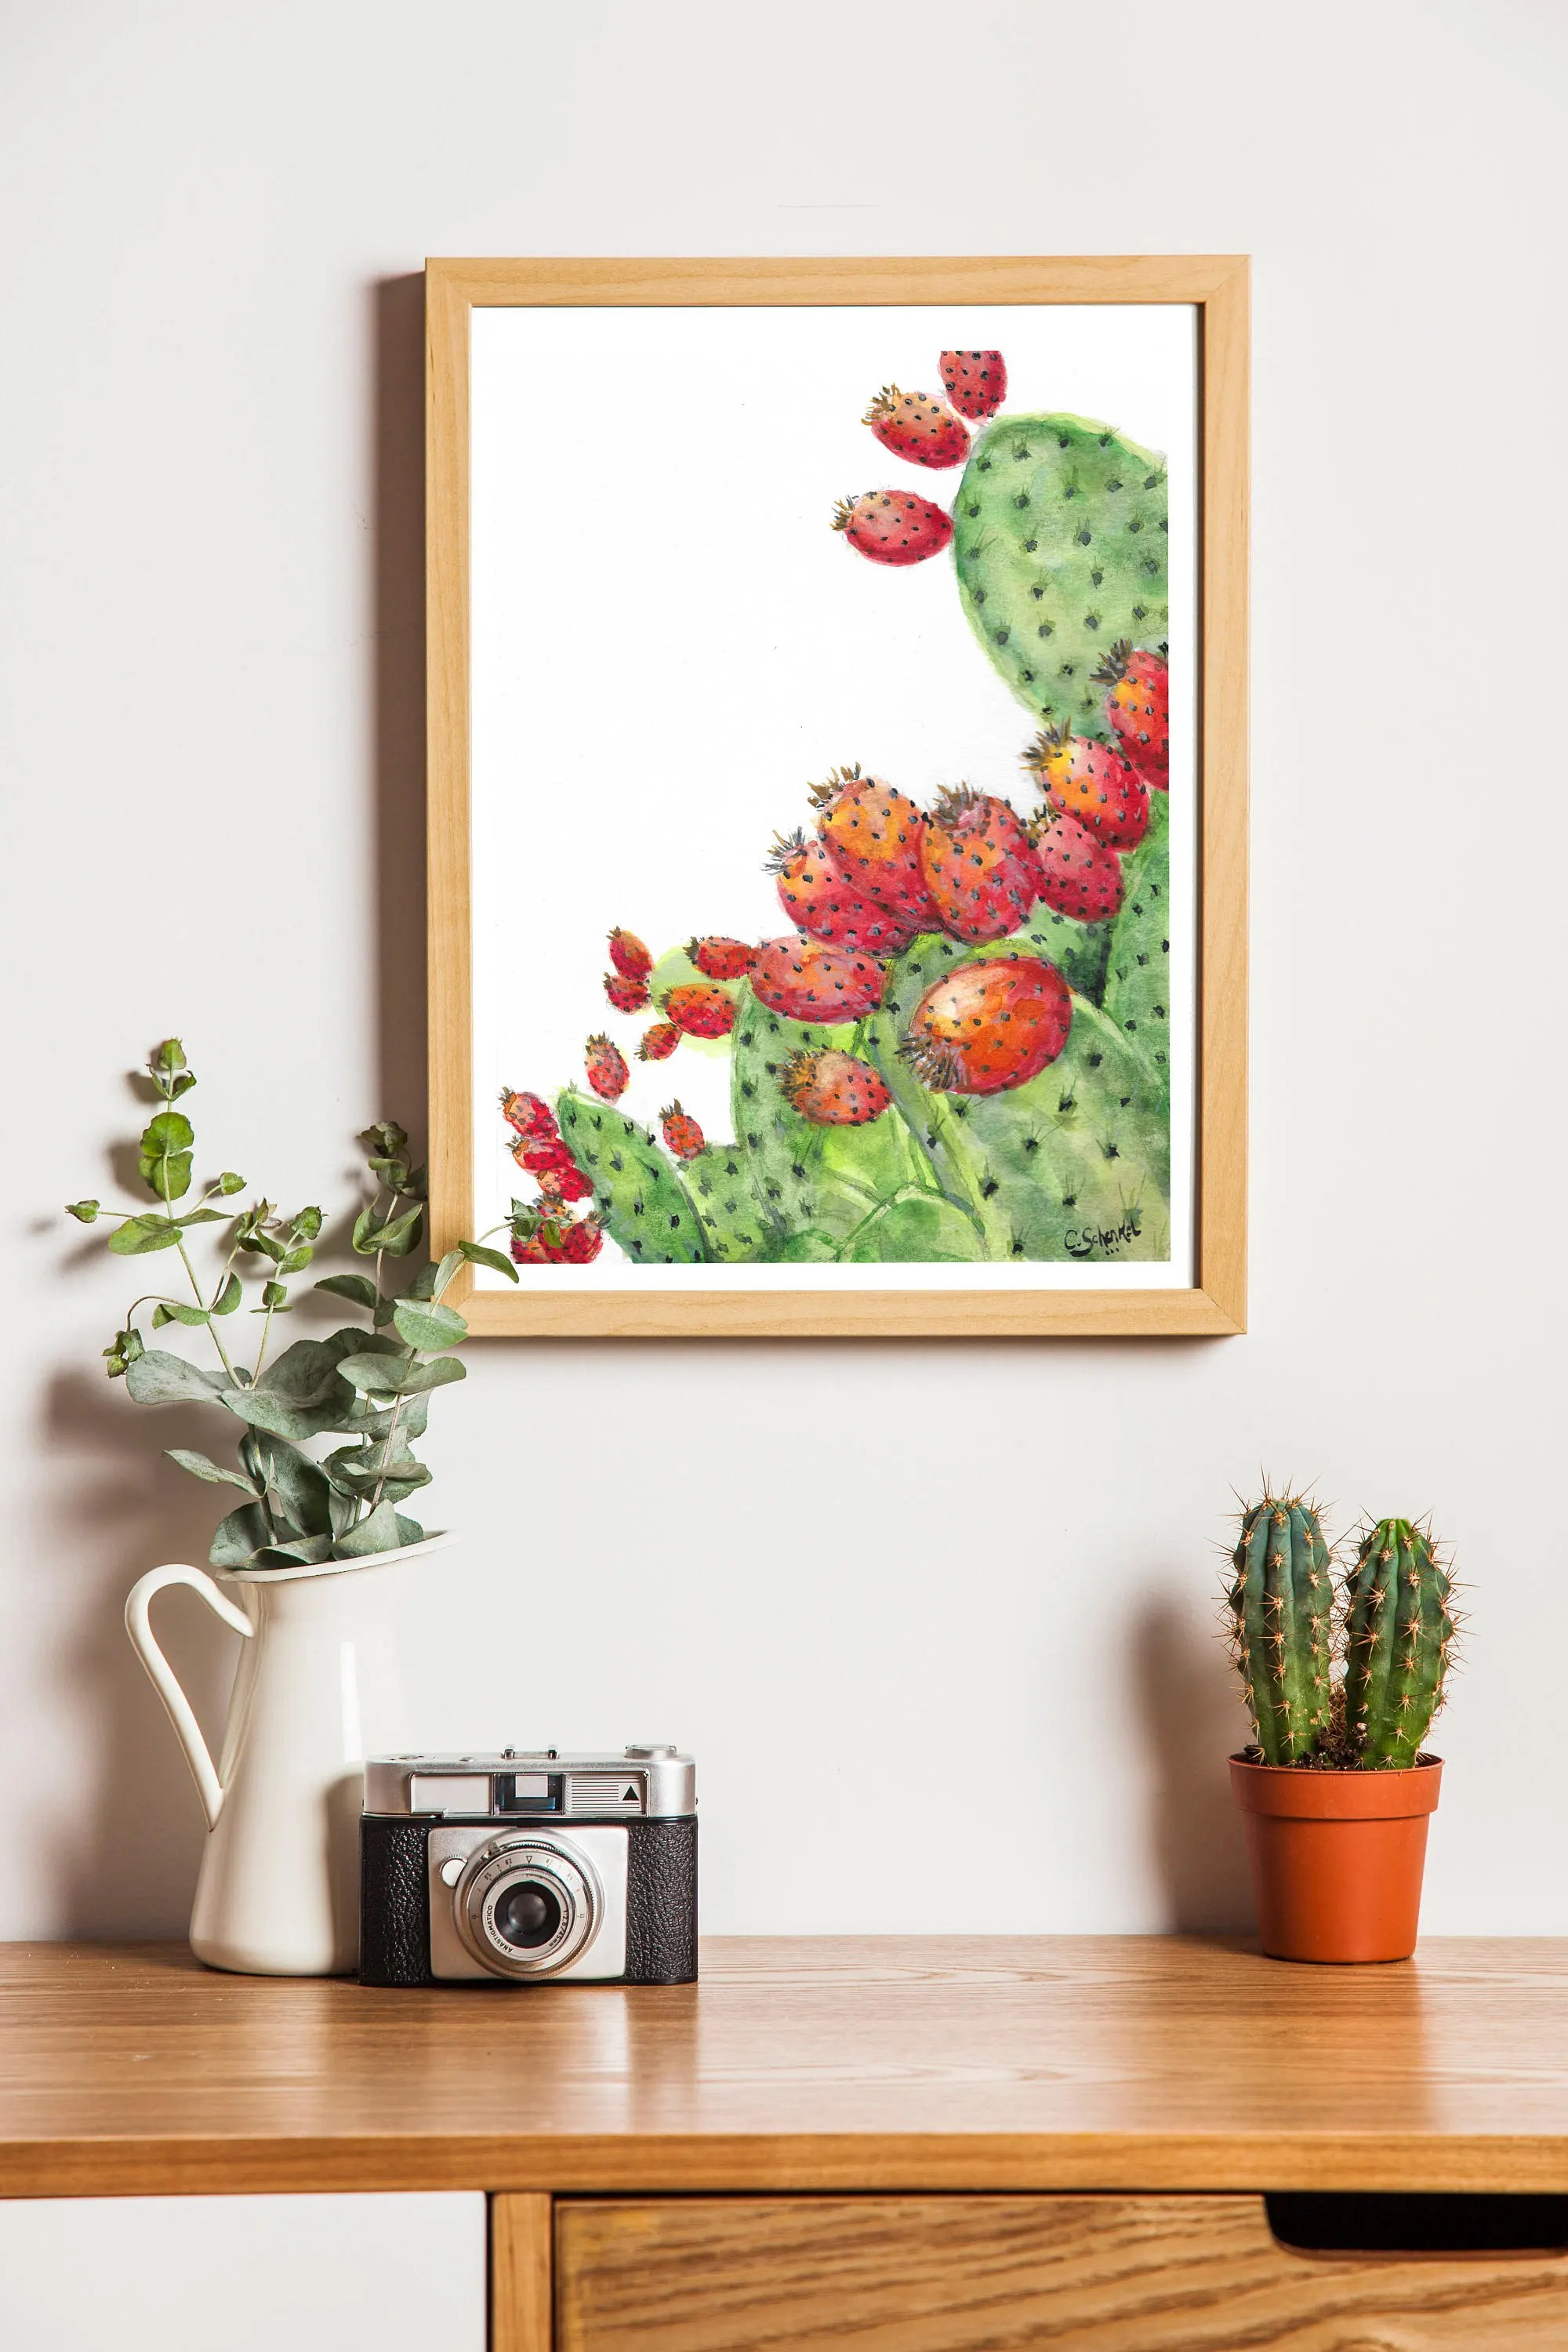 Affiche Deco Cuisine Affiche Déco Cactus Botanique 20x30 Cm Decoration Cuisine Kitchen Design Home Art Poster Print Minimalist Vegan Art Vegetarian